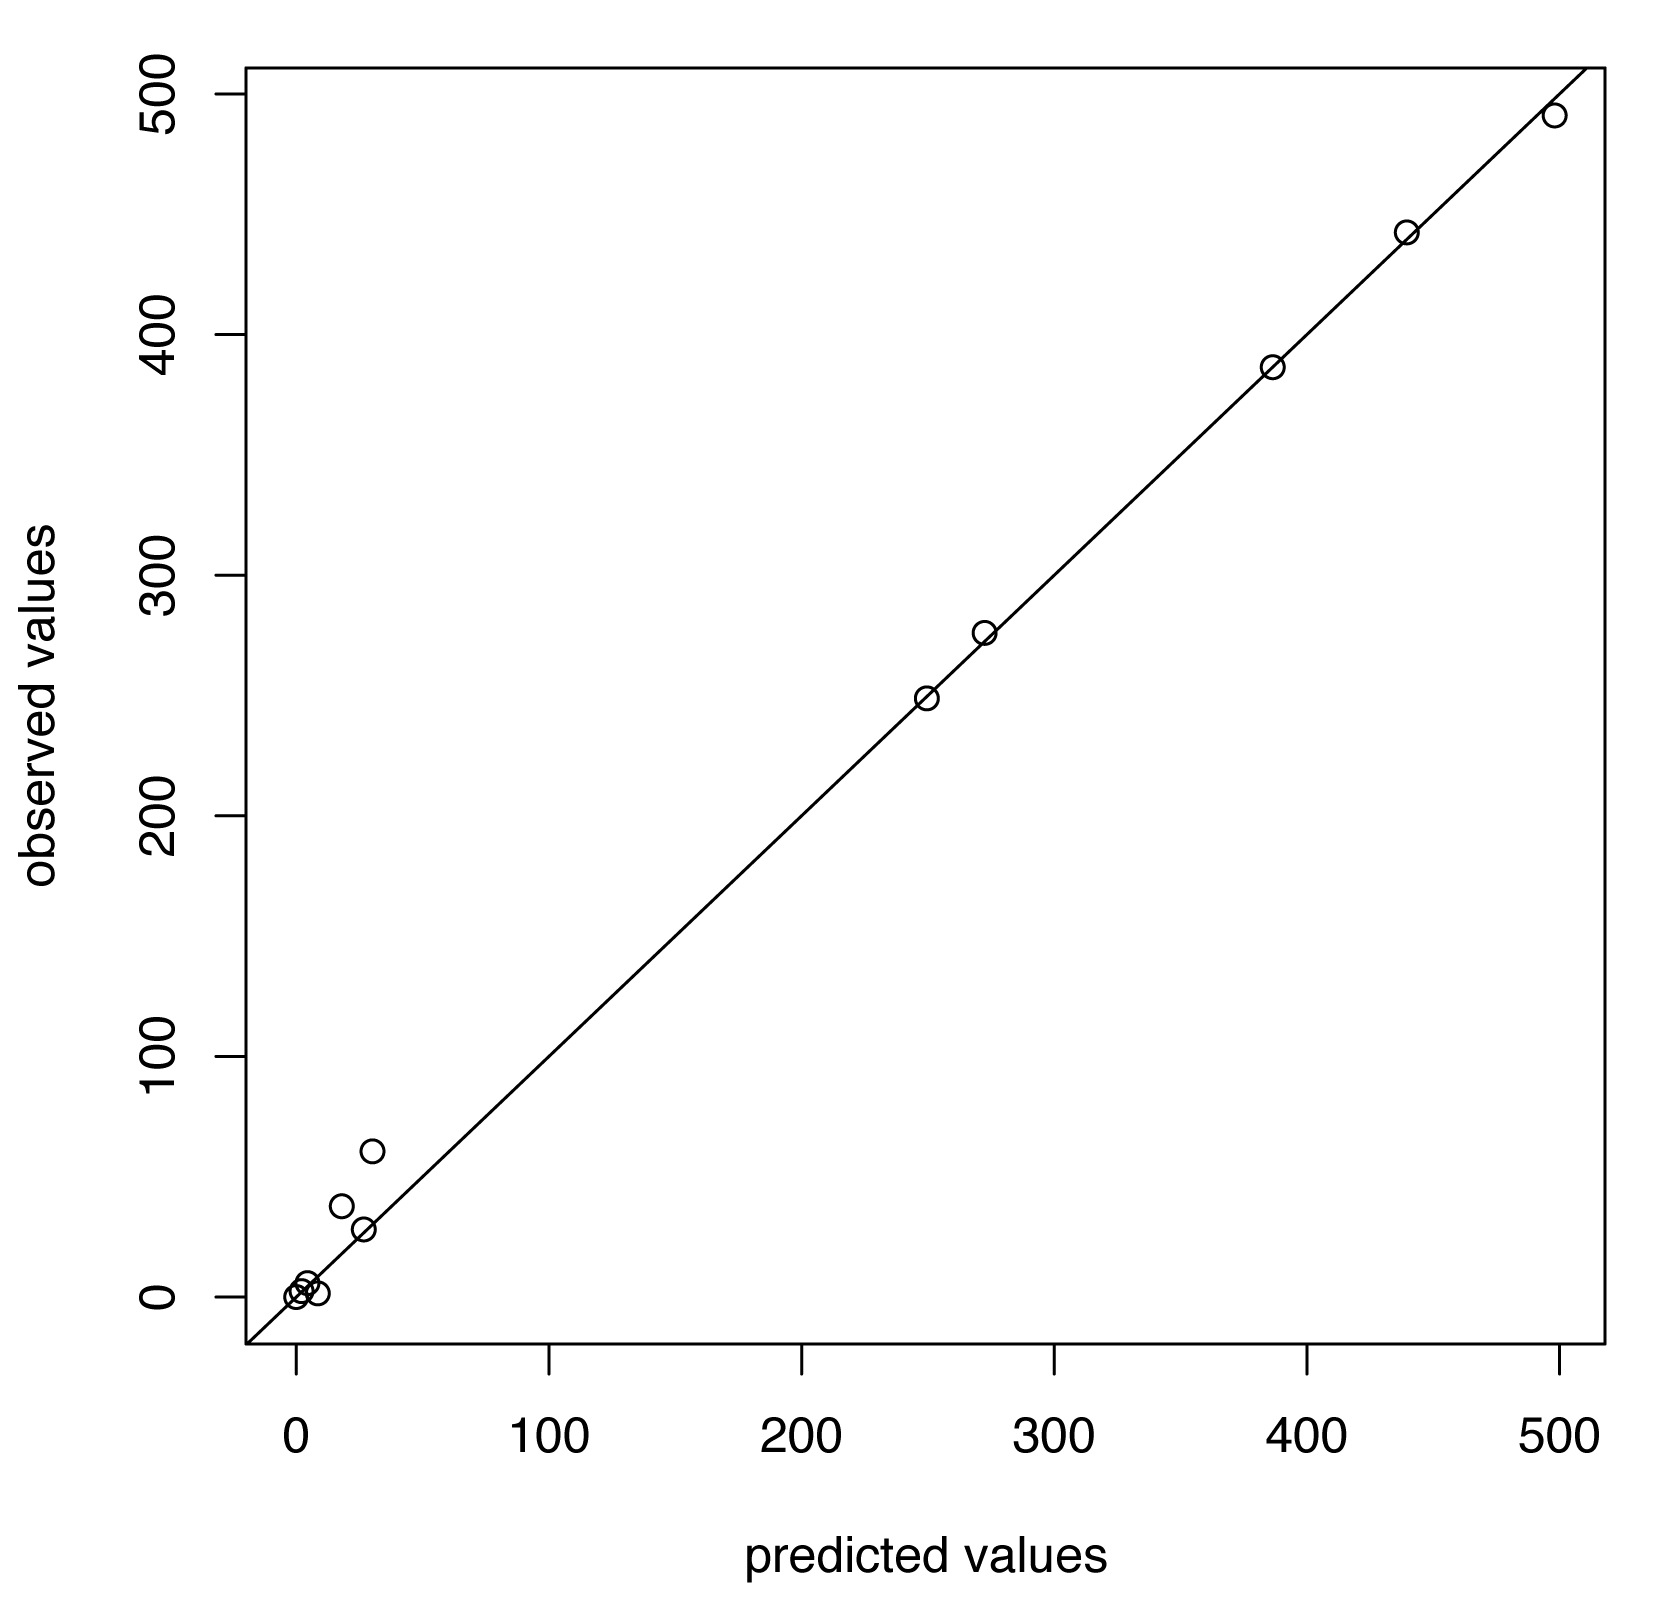 Predicted versus observed values for influenza A/H1N1 for the choice of thresholds <i>h</i>=140, <i>h</i><sub>c</sub>=500.